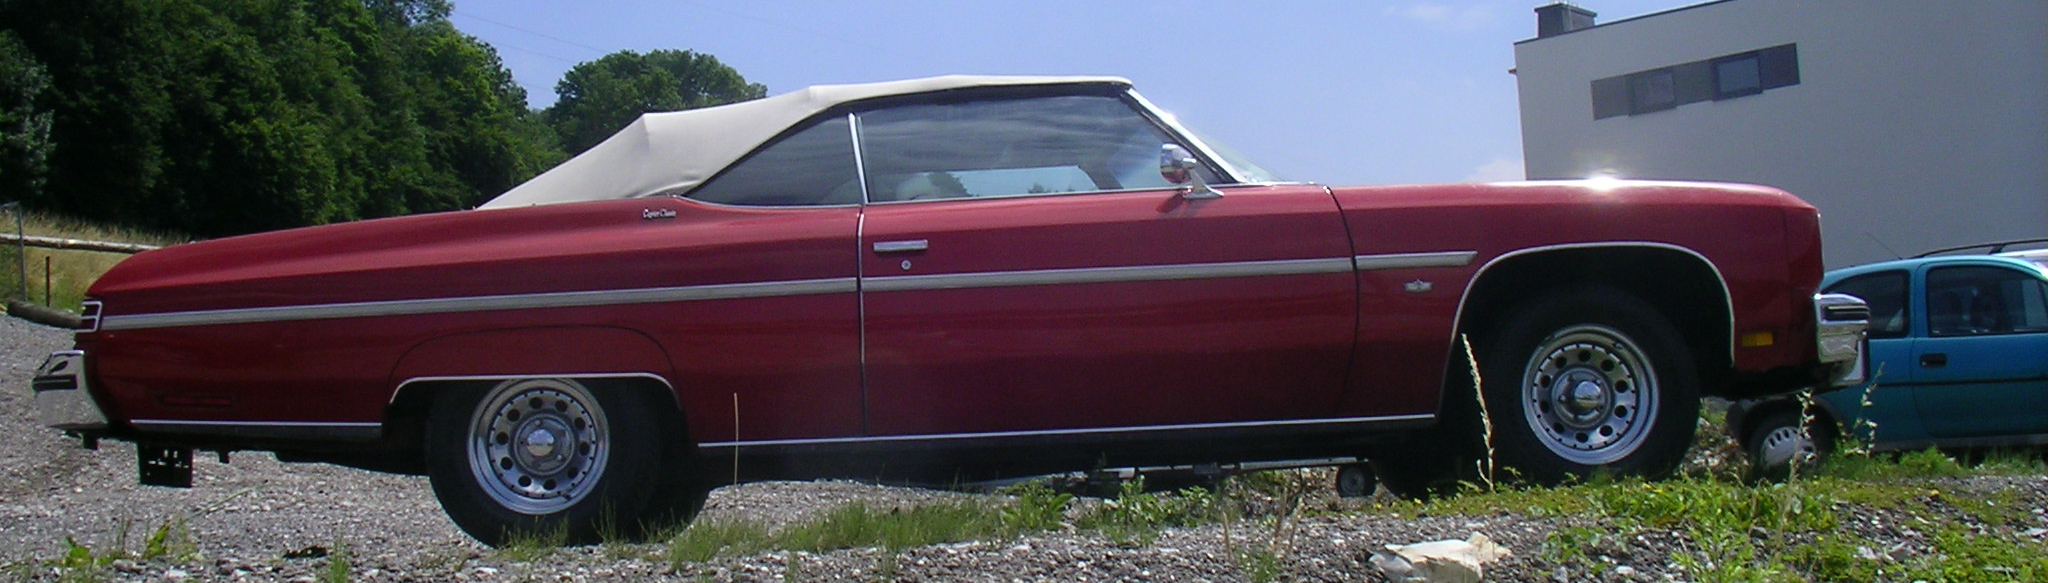 Description Chevrolet Caprice Classic 1975 Seite.jpg